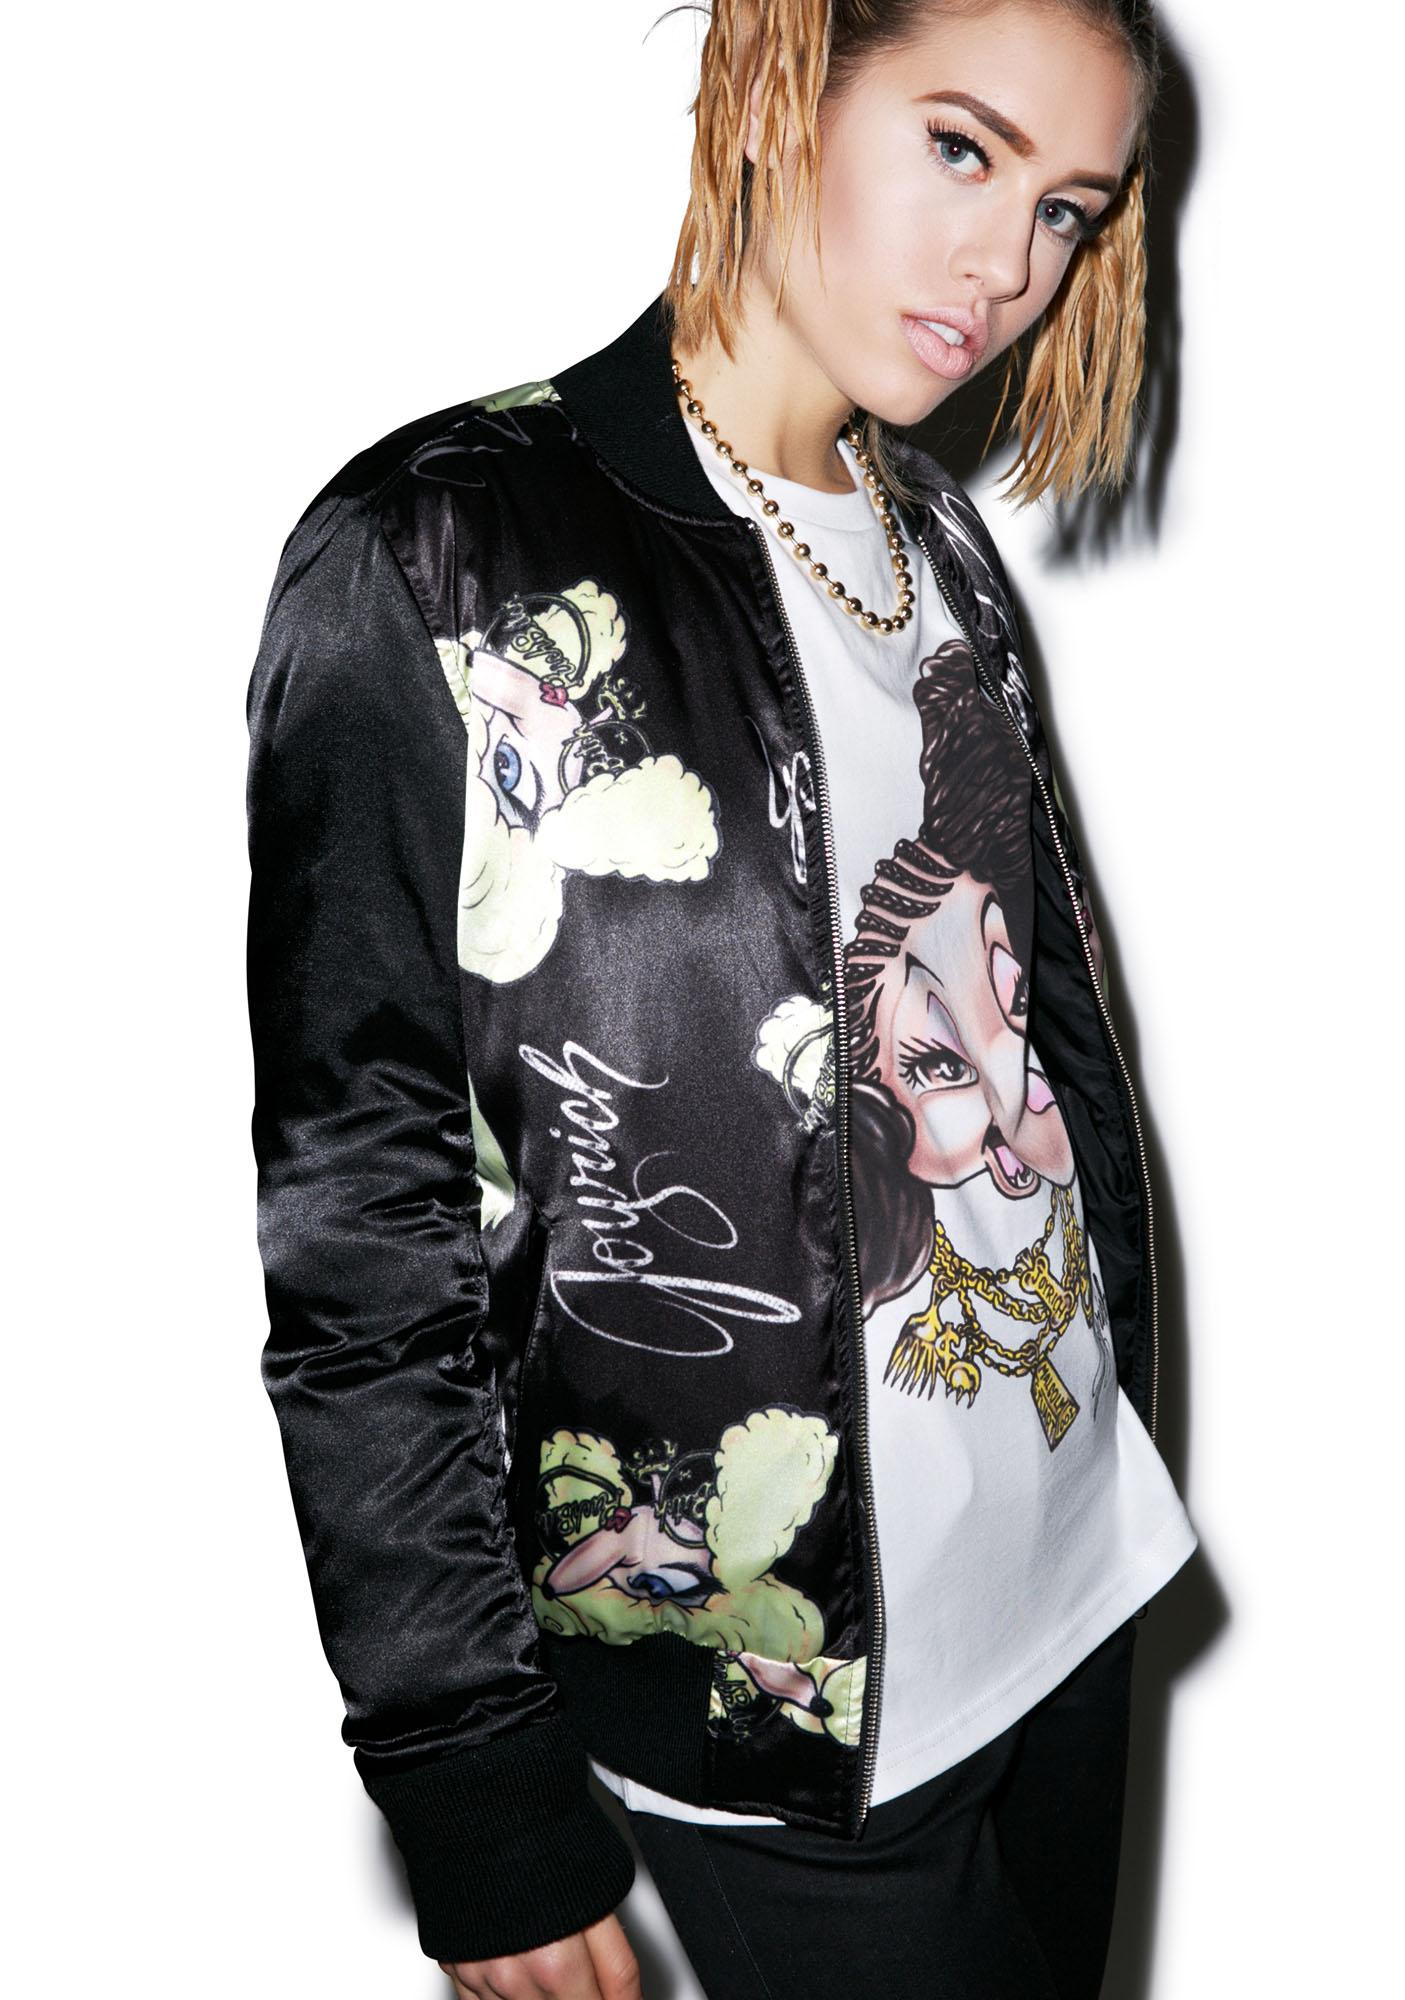 Joyrich Rich Bitch Reversible Jacket